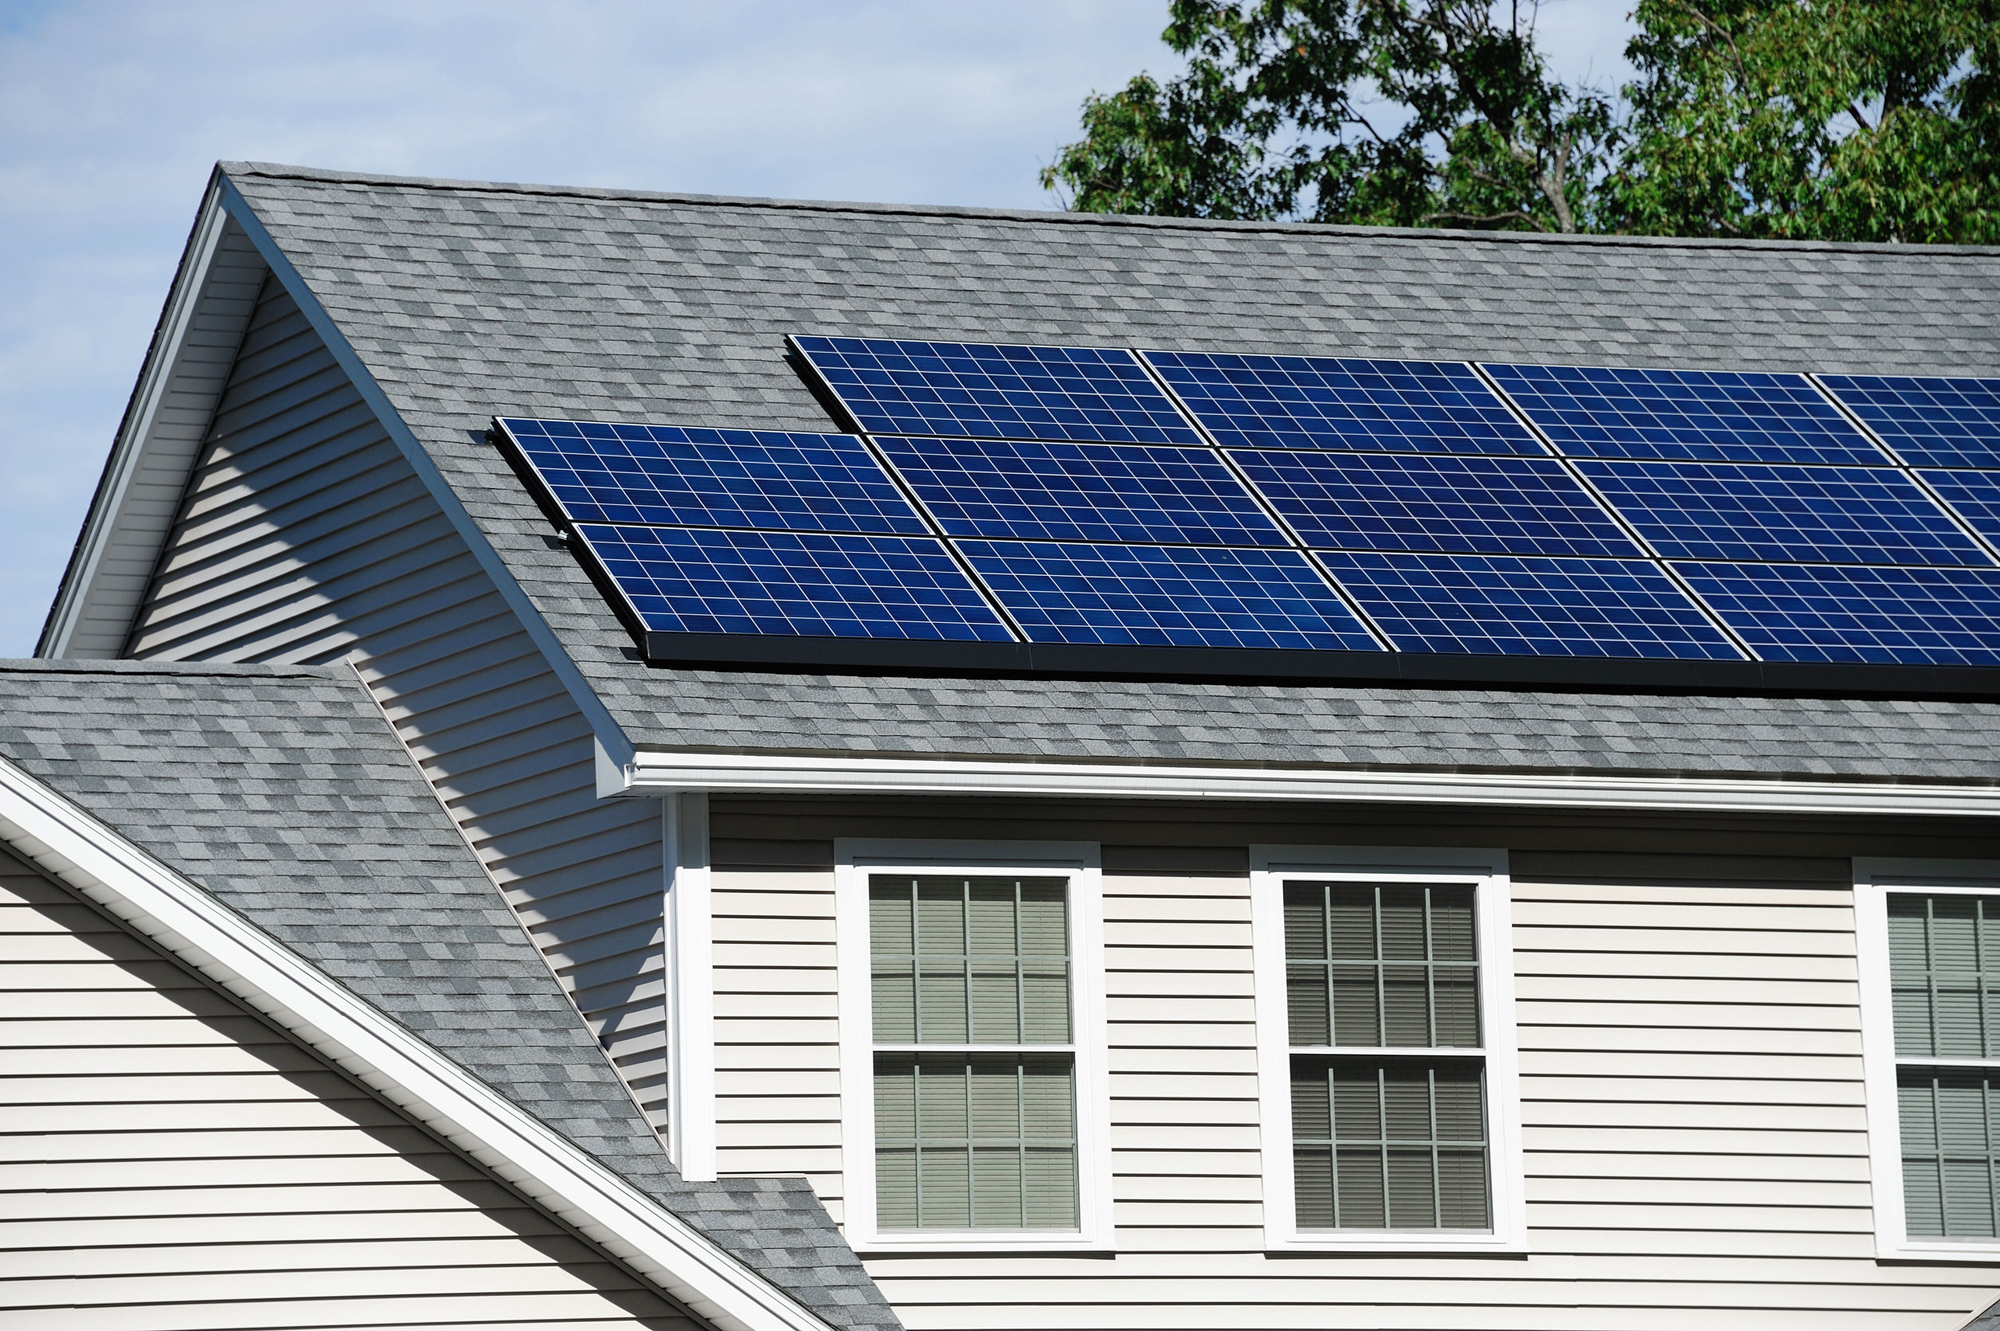 Will Solar Panels Be a Selling Point for Your Colorado Home?